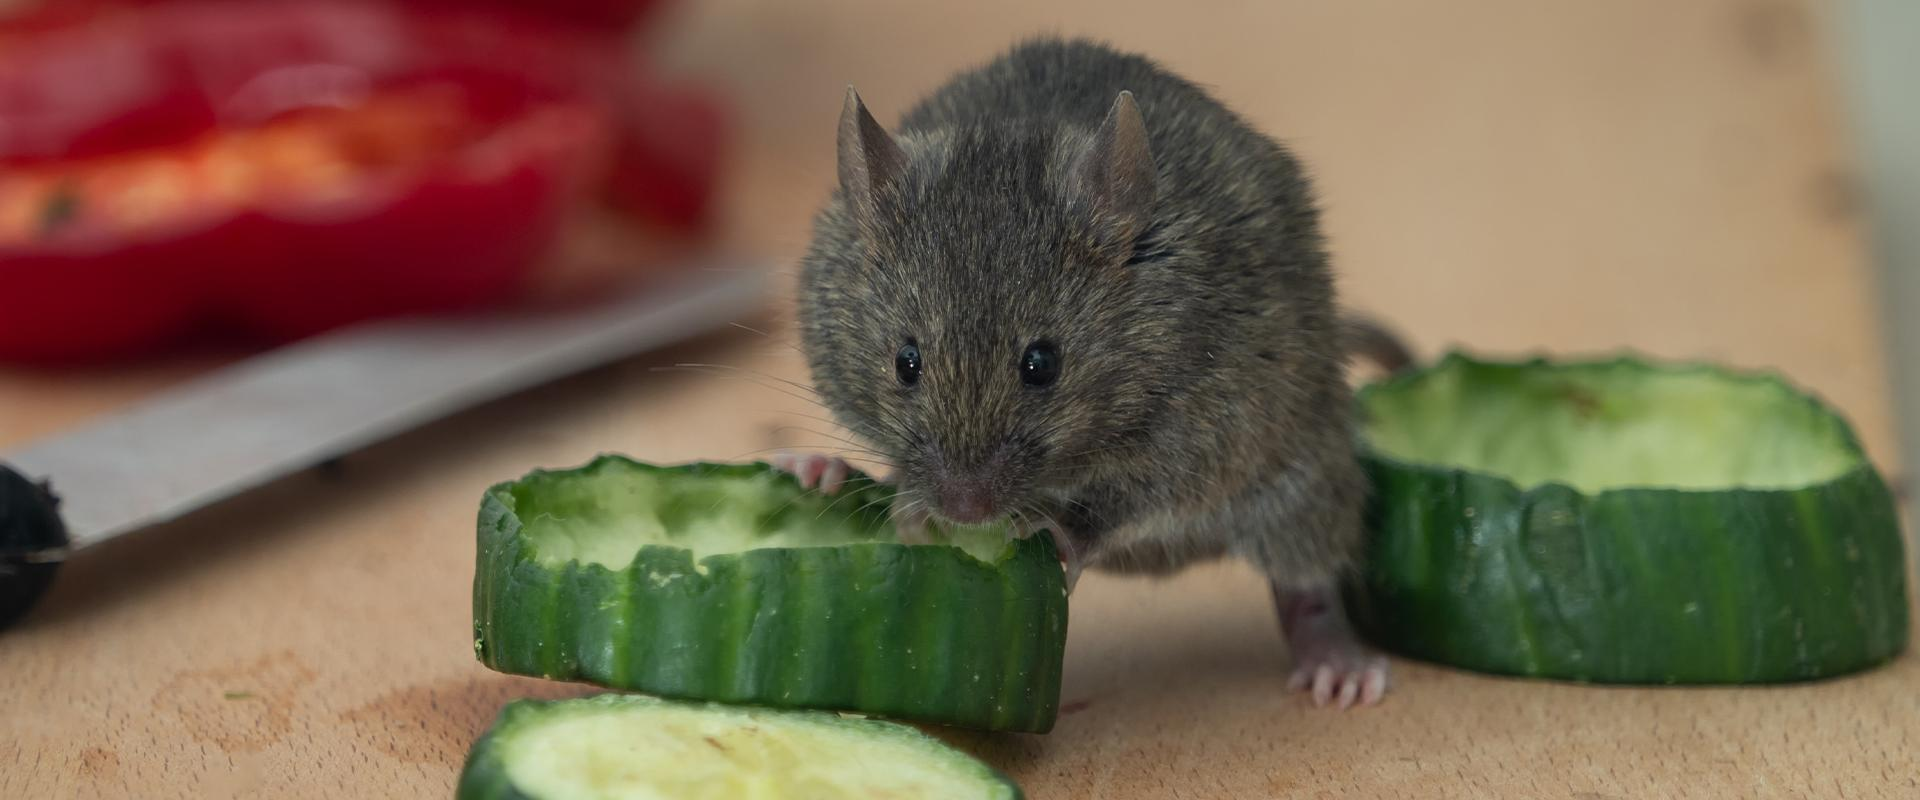 mice eating vegetable in fayetteville georgia